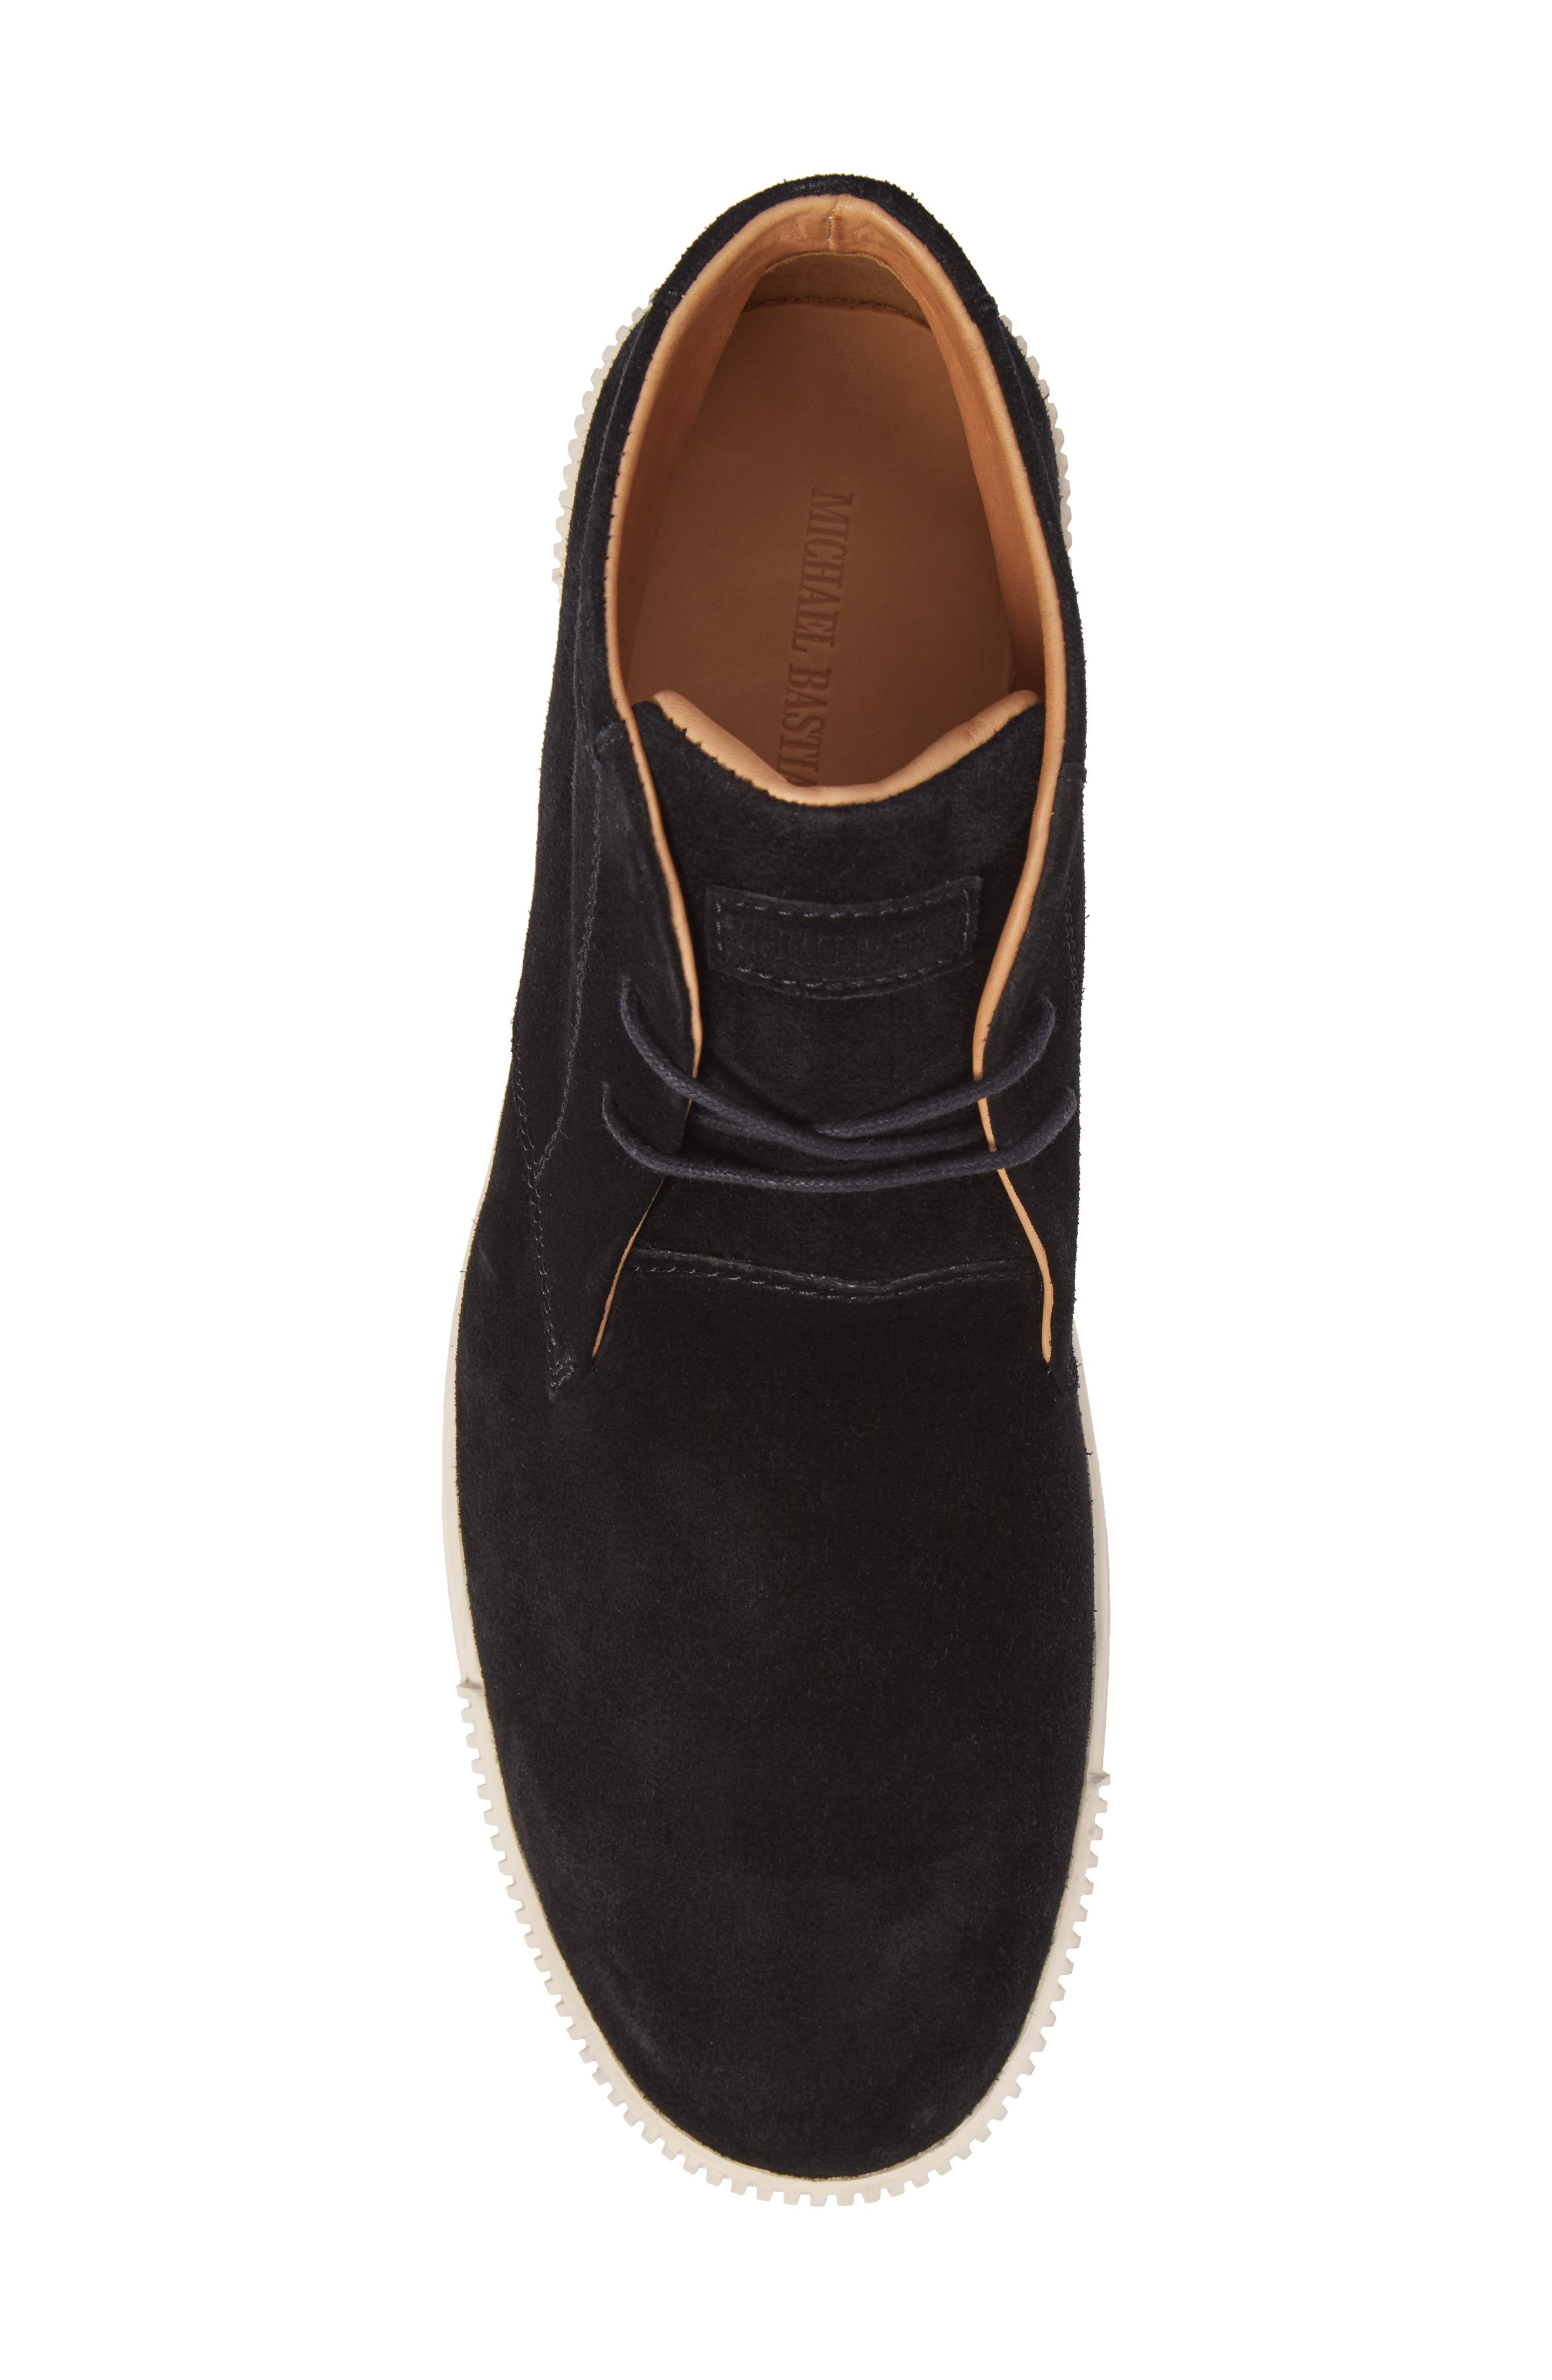 Lyons Chukka Sneaker,                             Alternate thumbnail 5, color,                             BLACK SUEDE